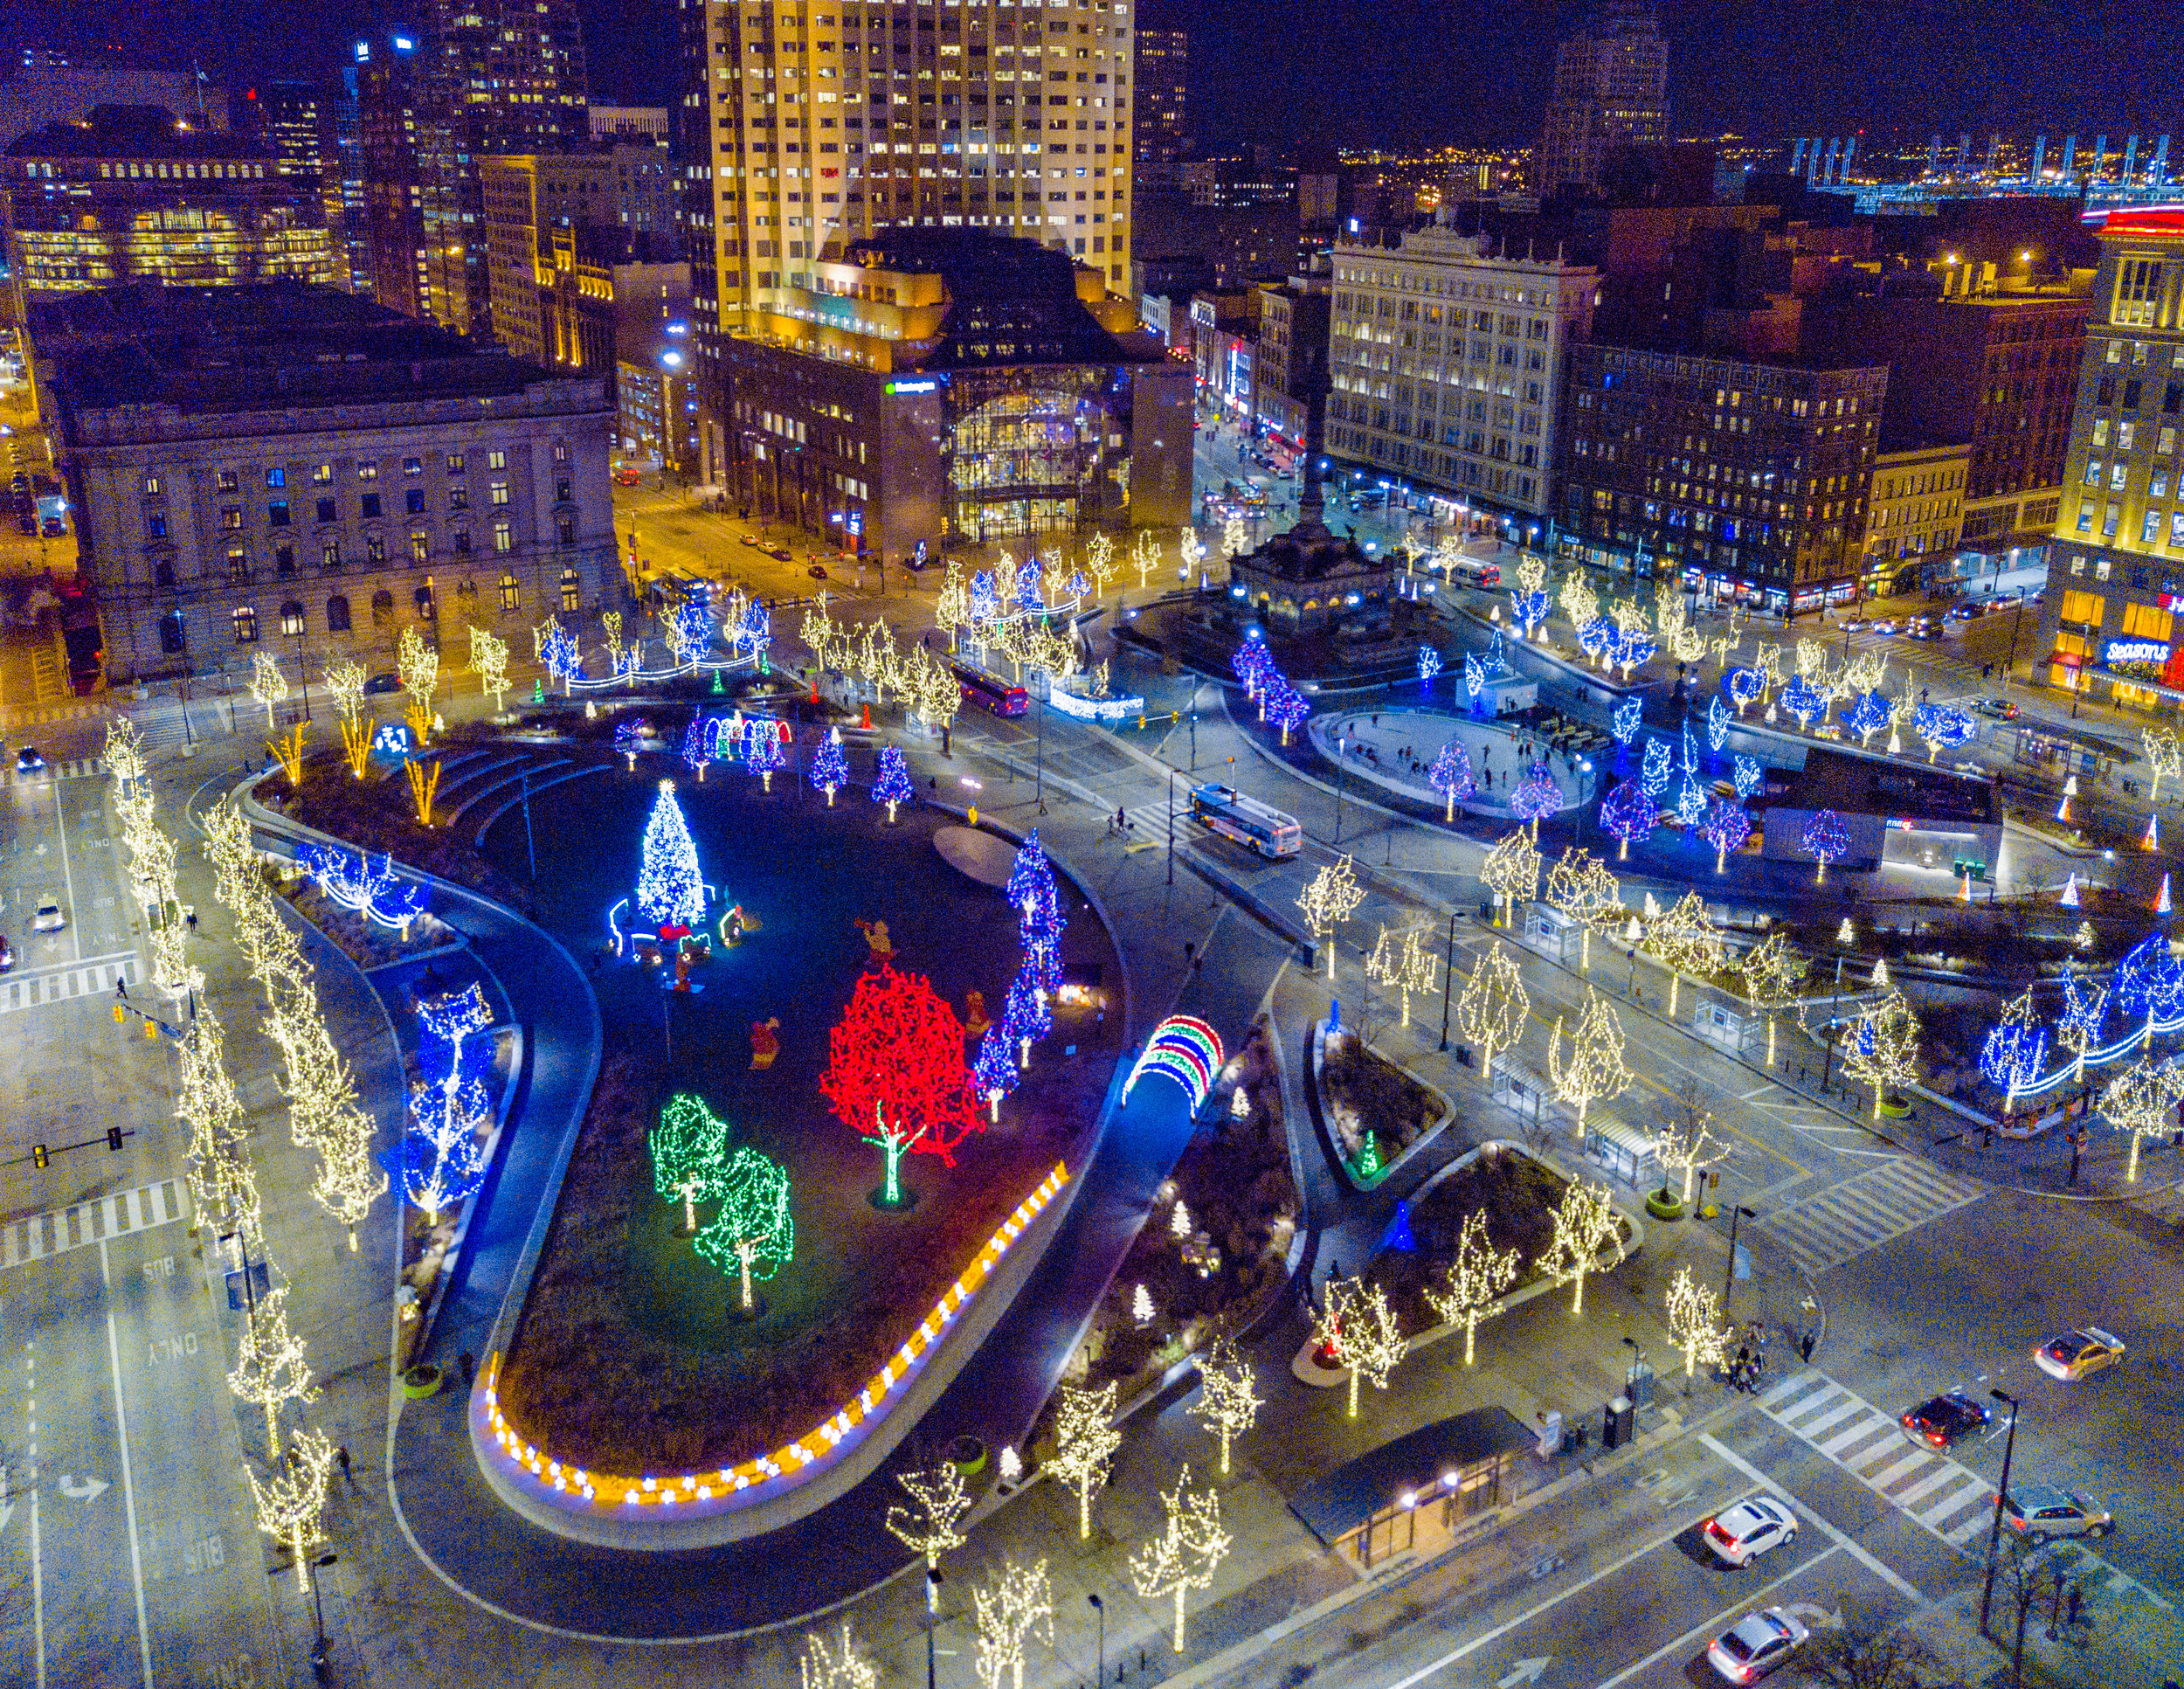 Public Square in Cleveland, Ohio • December 2017